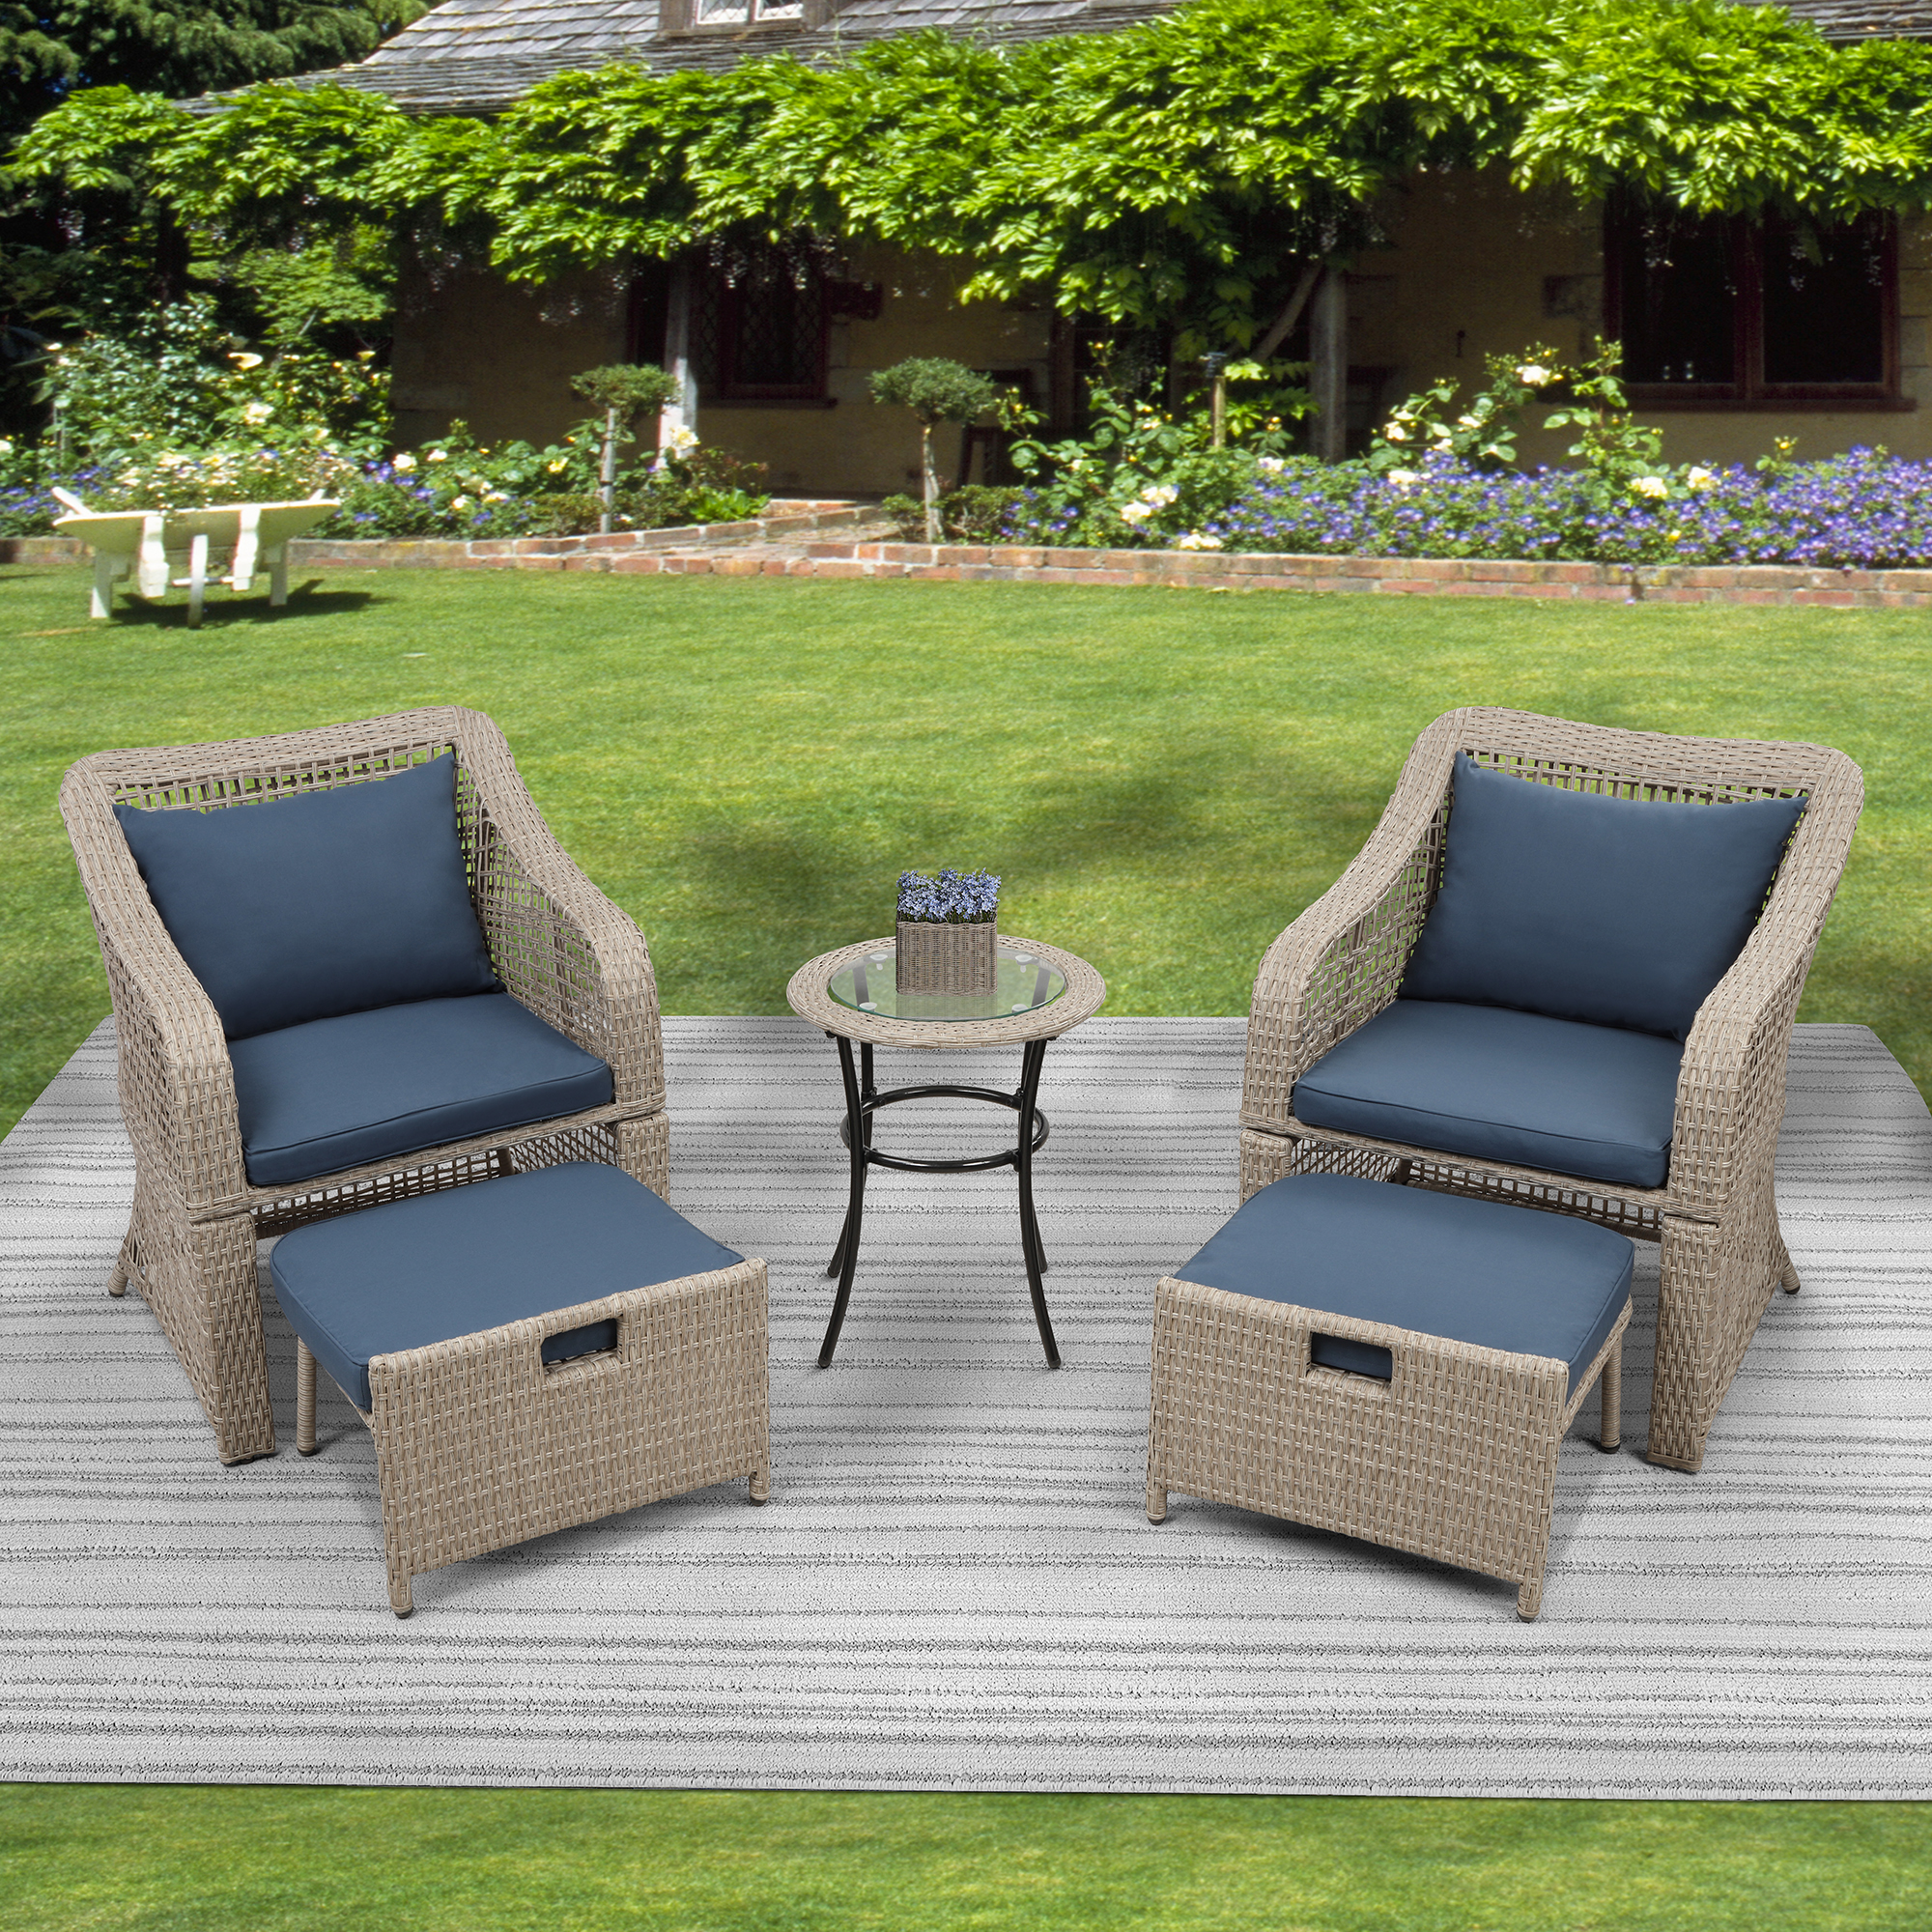 Clearance! 5-piece Outdoor Conversation Set, Patio ...